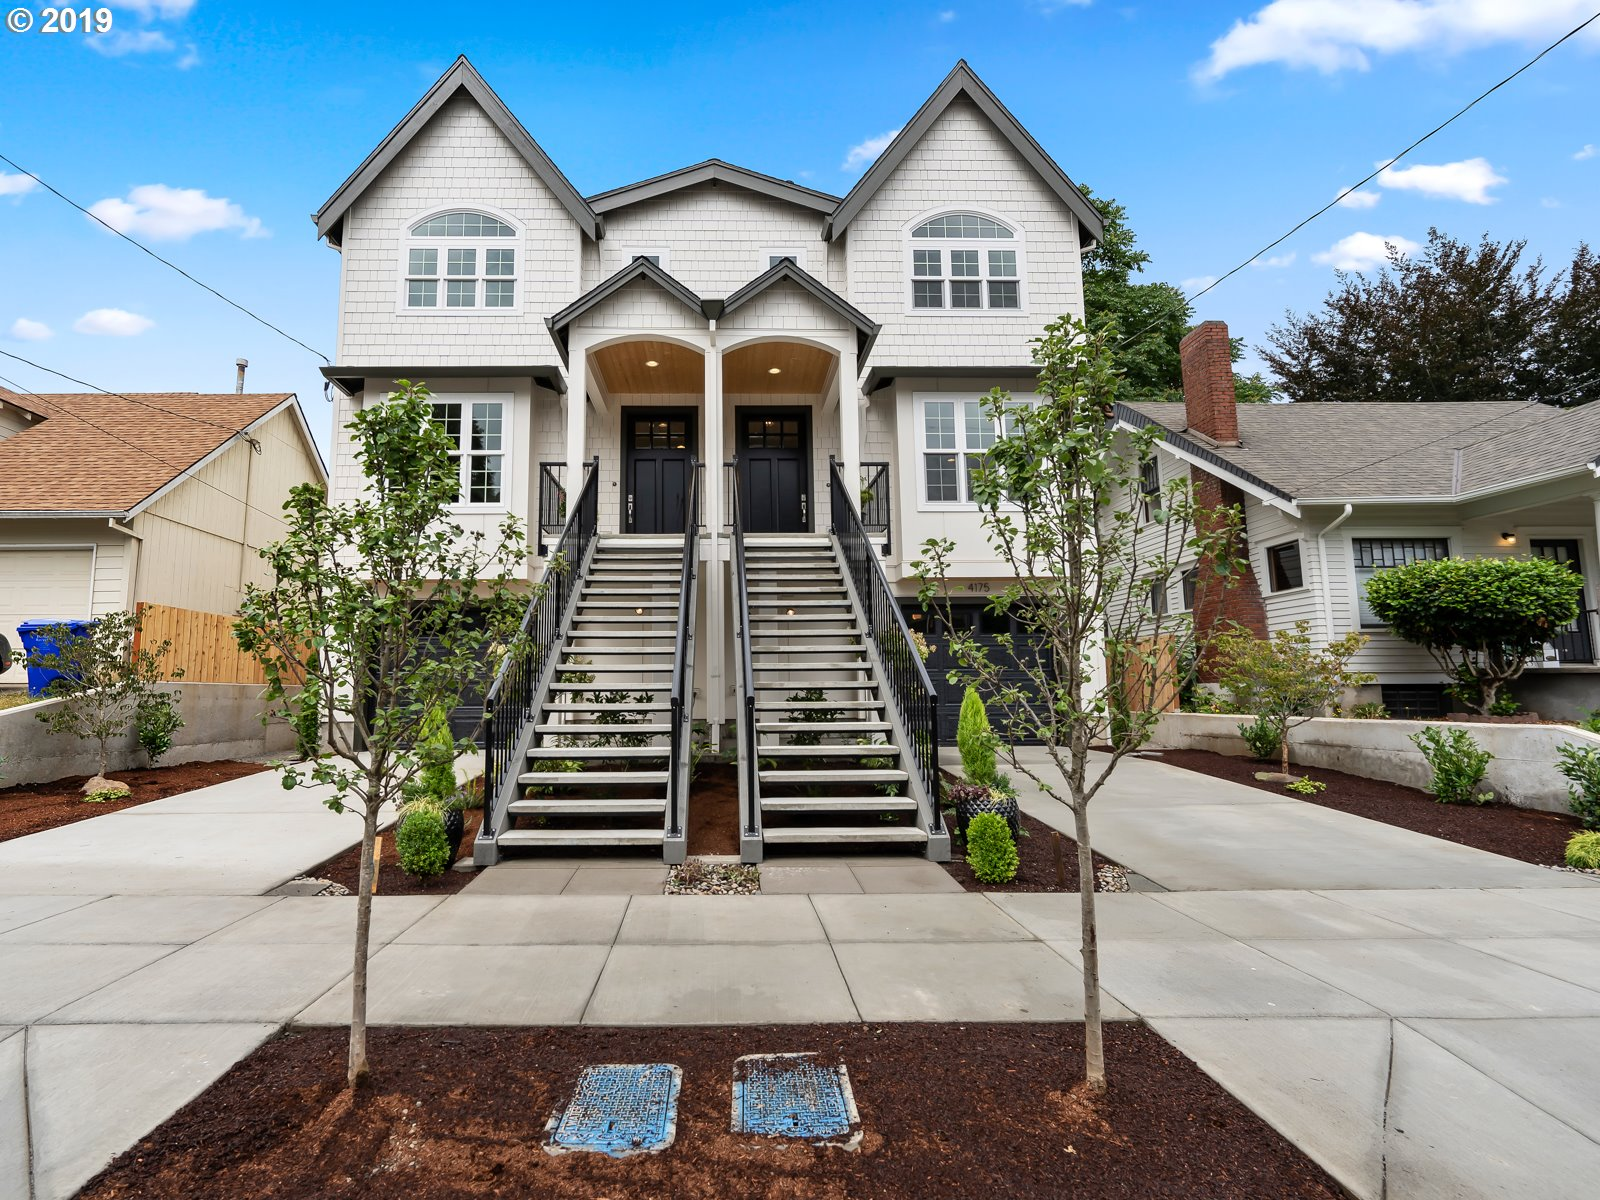 Another gorgeous home by Valhalla Custom Homes LLC. One of two condos just completed with high-end, designer finishes. Mother-in-law suite in daylight basement with separate entrance. Huge kitchen w/ covered deck & paver patio perfect for entertaining. HIGHLY sought after area, super close to many bars, restaurants and shops (2 blocks to N. Williams). Friendly, established neighborhood experiencing rapid, impressive revitalization.